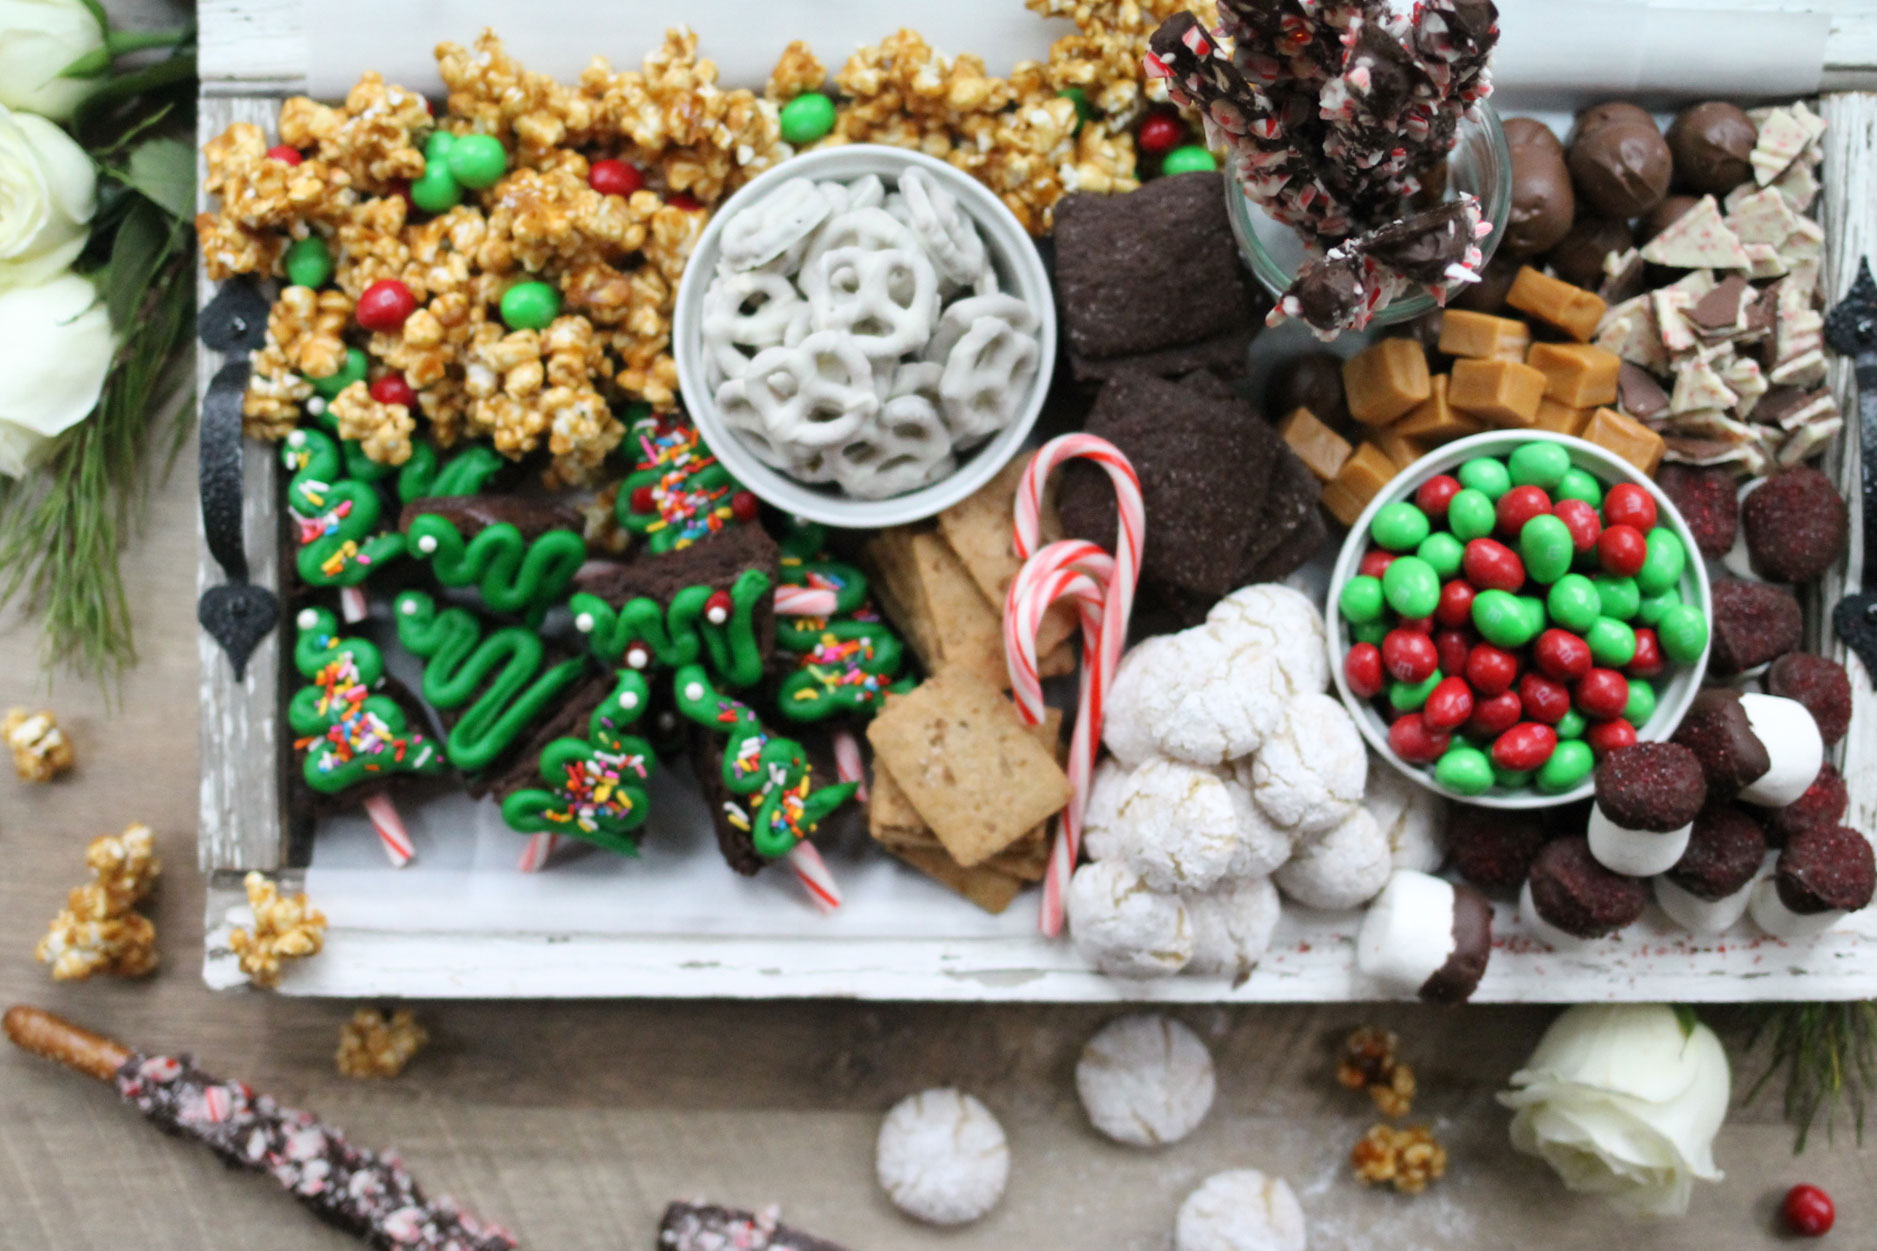 How to make the ultimate dessert snack board for the holidays; a.k.a., a sweet charcuterie spread. | glitterinc.com | @glitterinc - How to Make a Holiday Dessert Charcuterie Board by North Carolina foodie blogger Glitter, Inc.